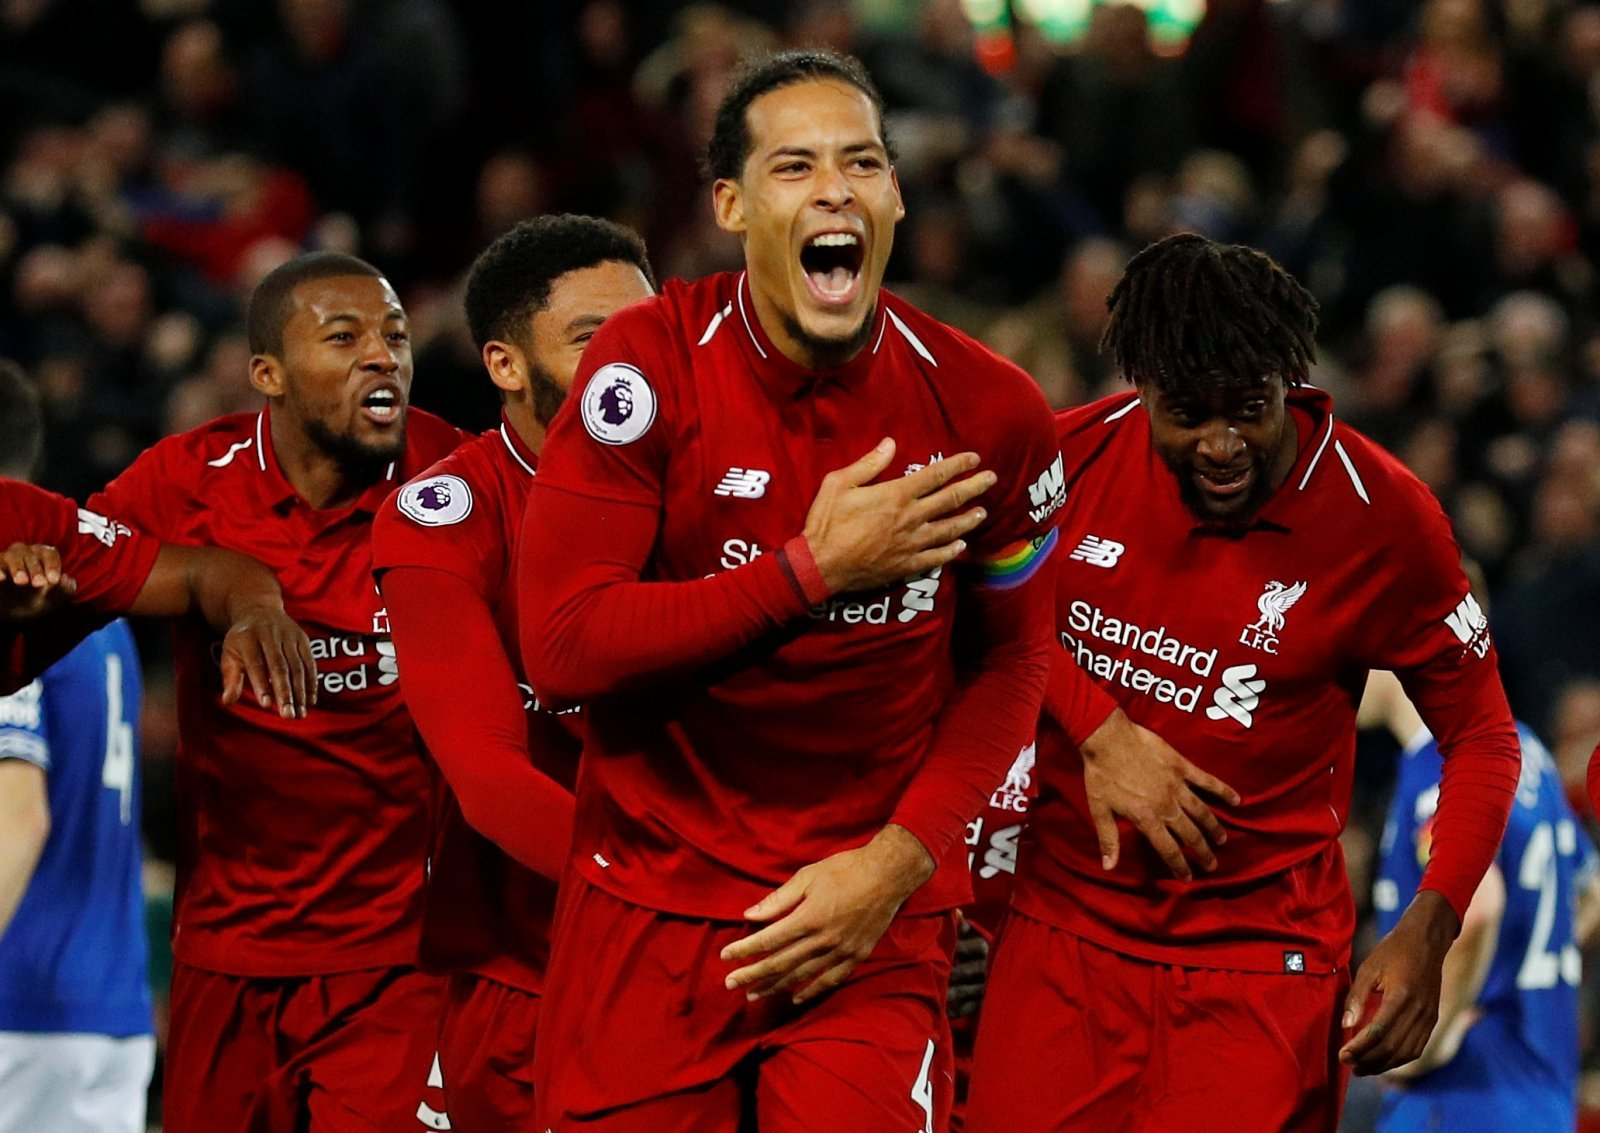 Liverpool keen to get Van Dijk to sign new deal